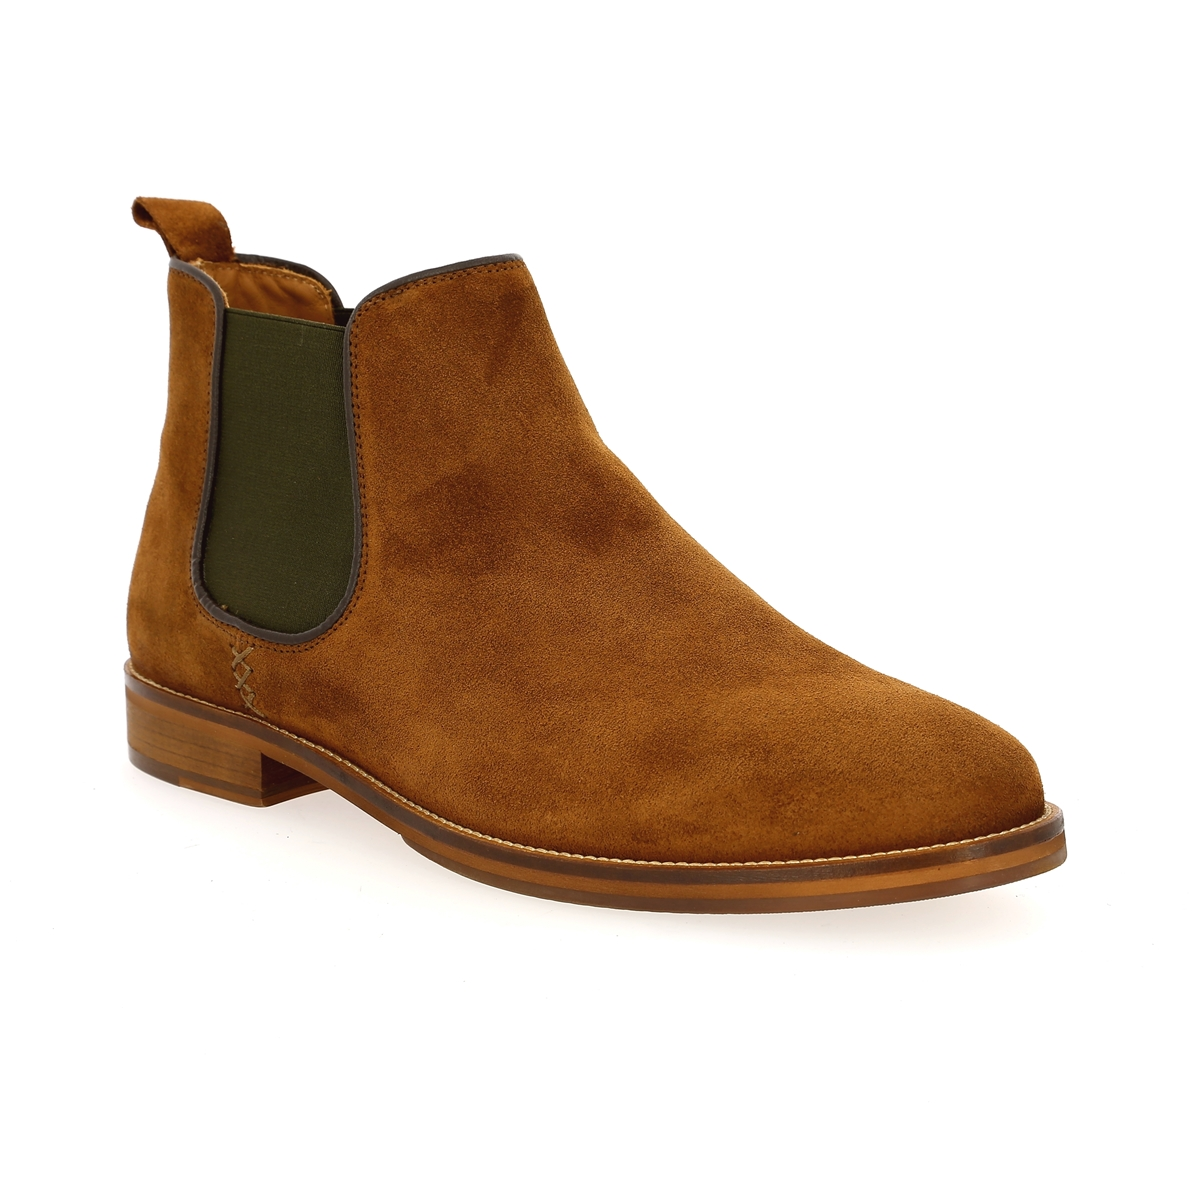 Scotch & Soda Boots cognac